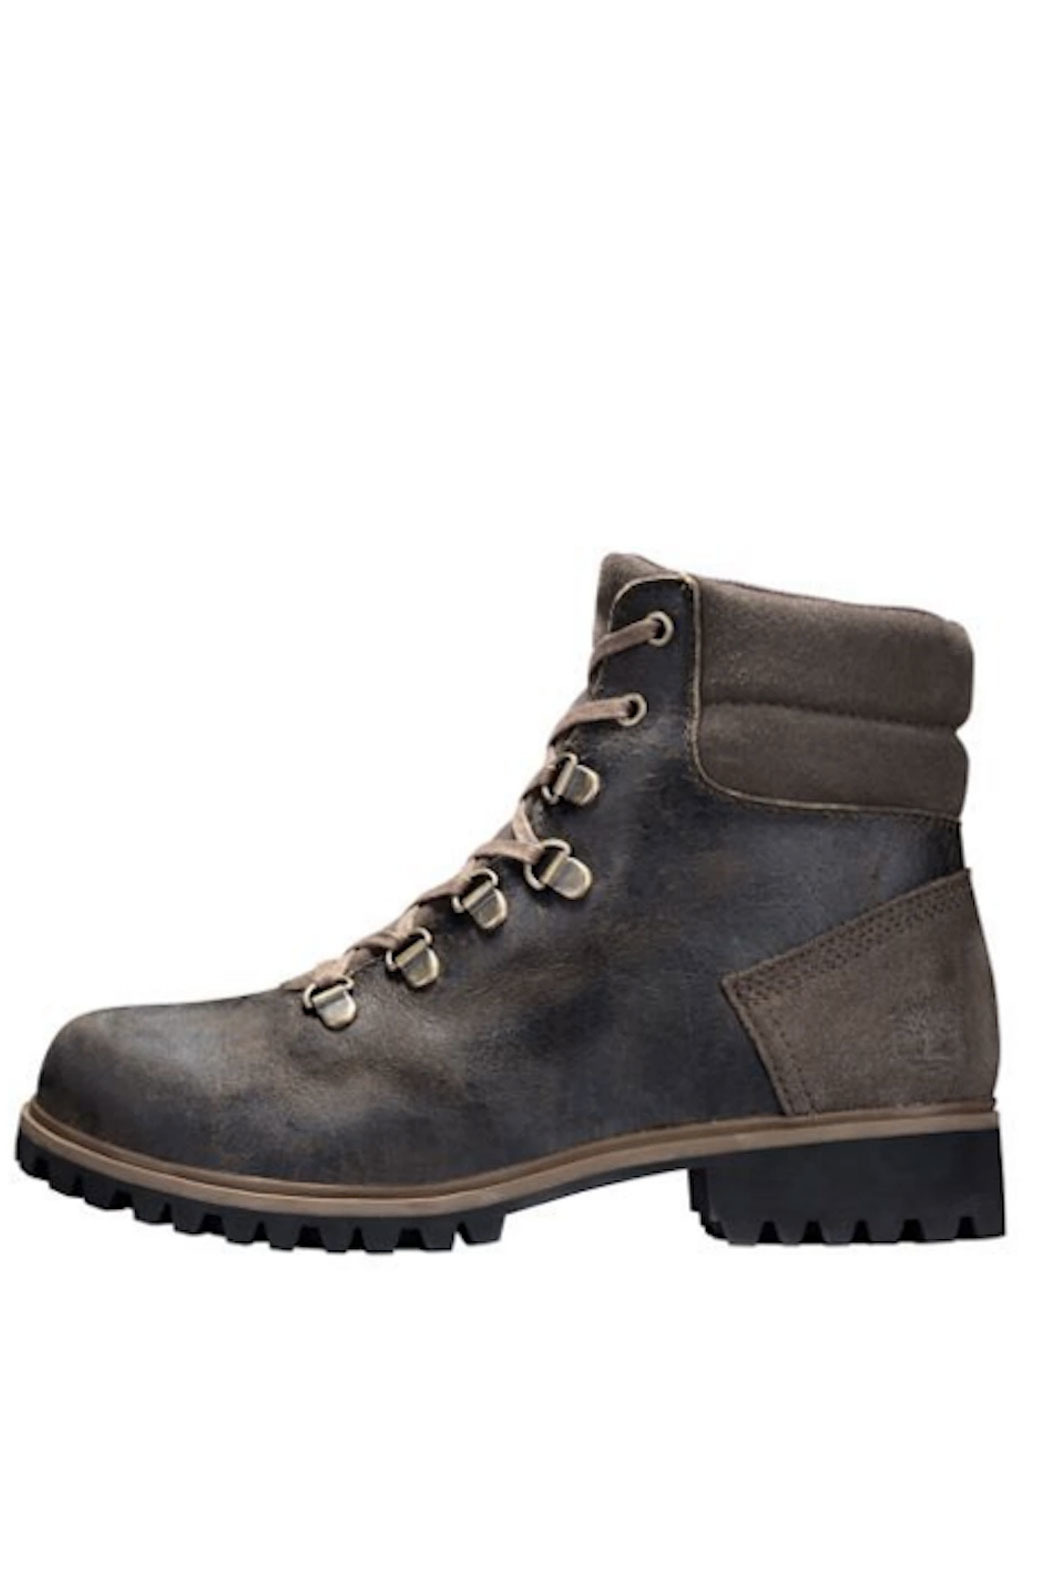 Timberland PRO Wheelwright Hiking Boots - Main Image